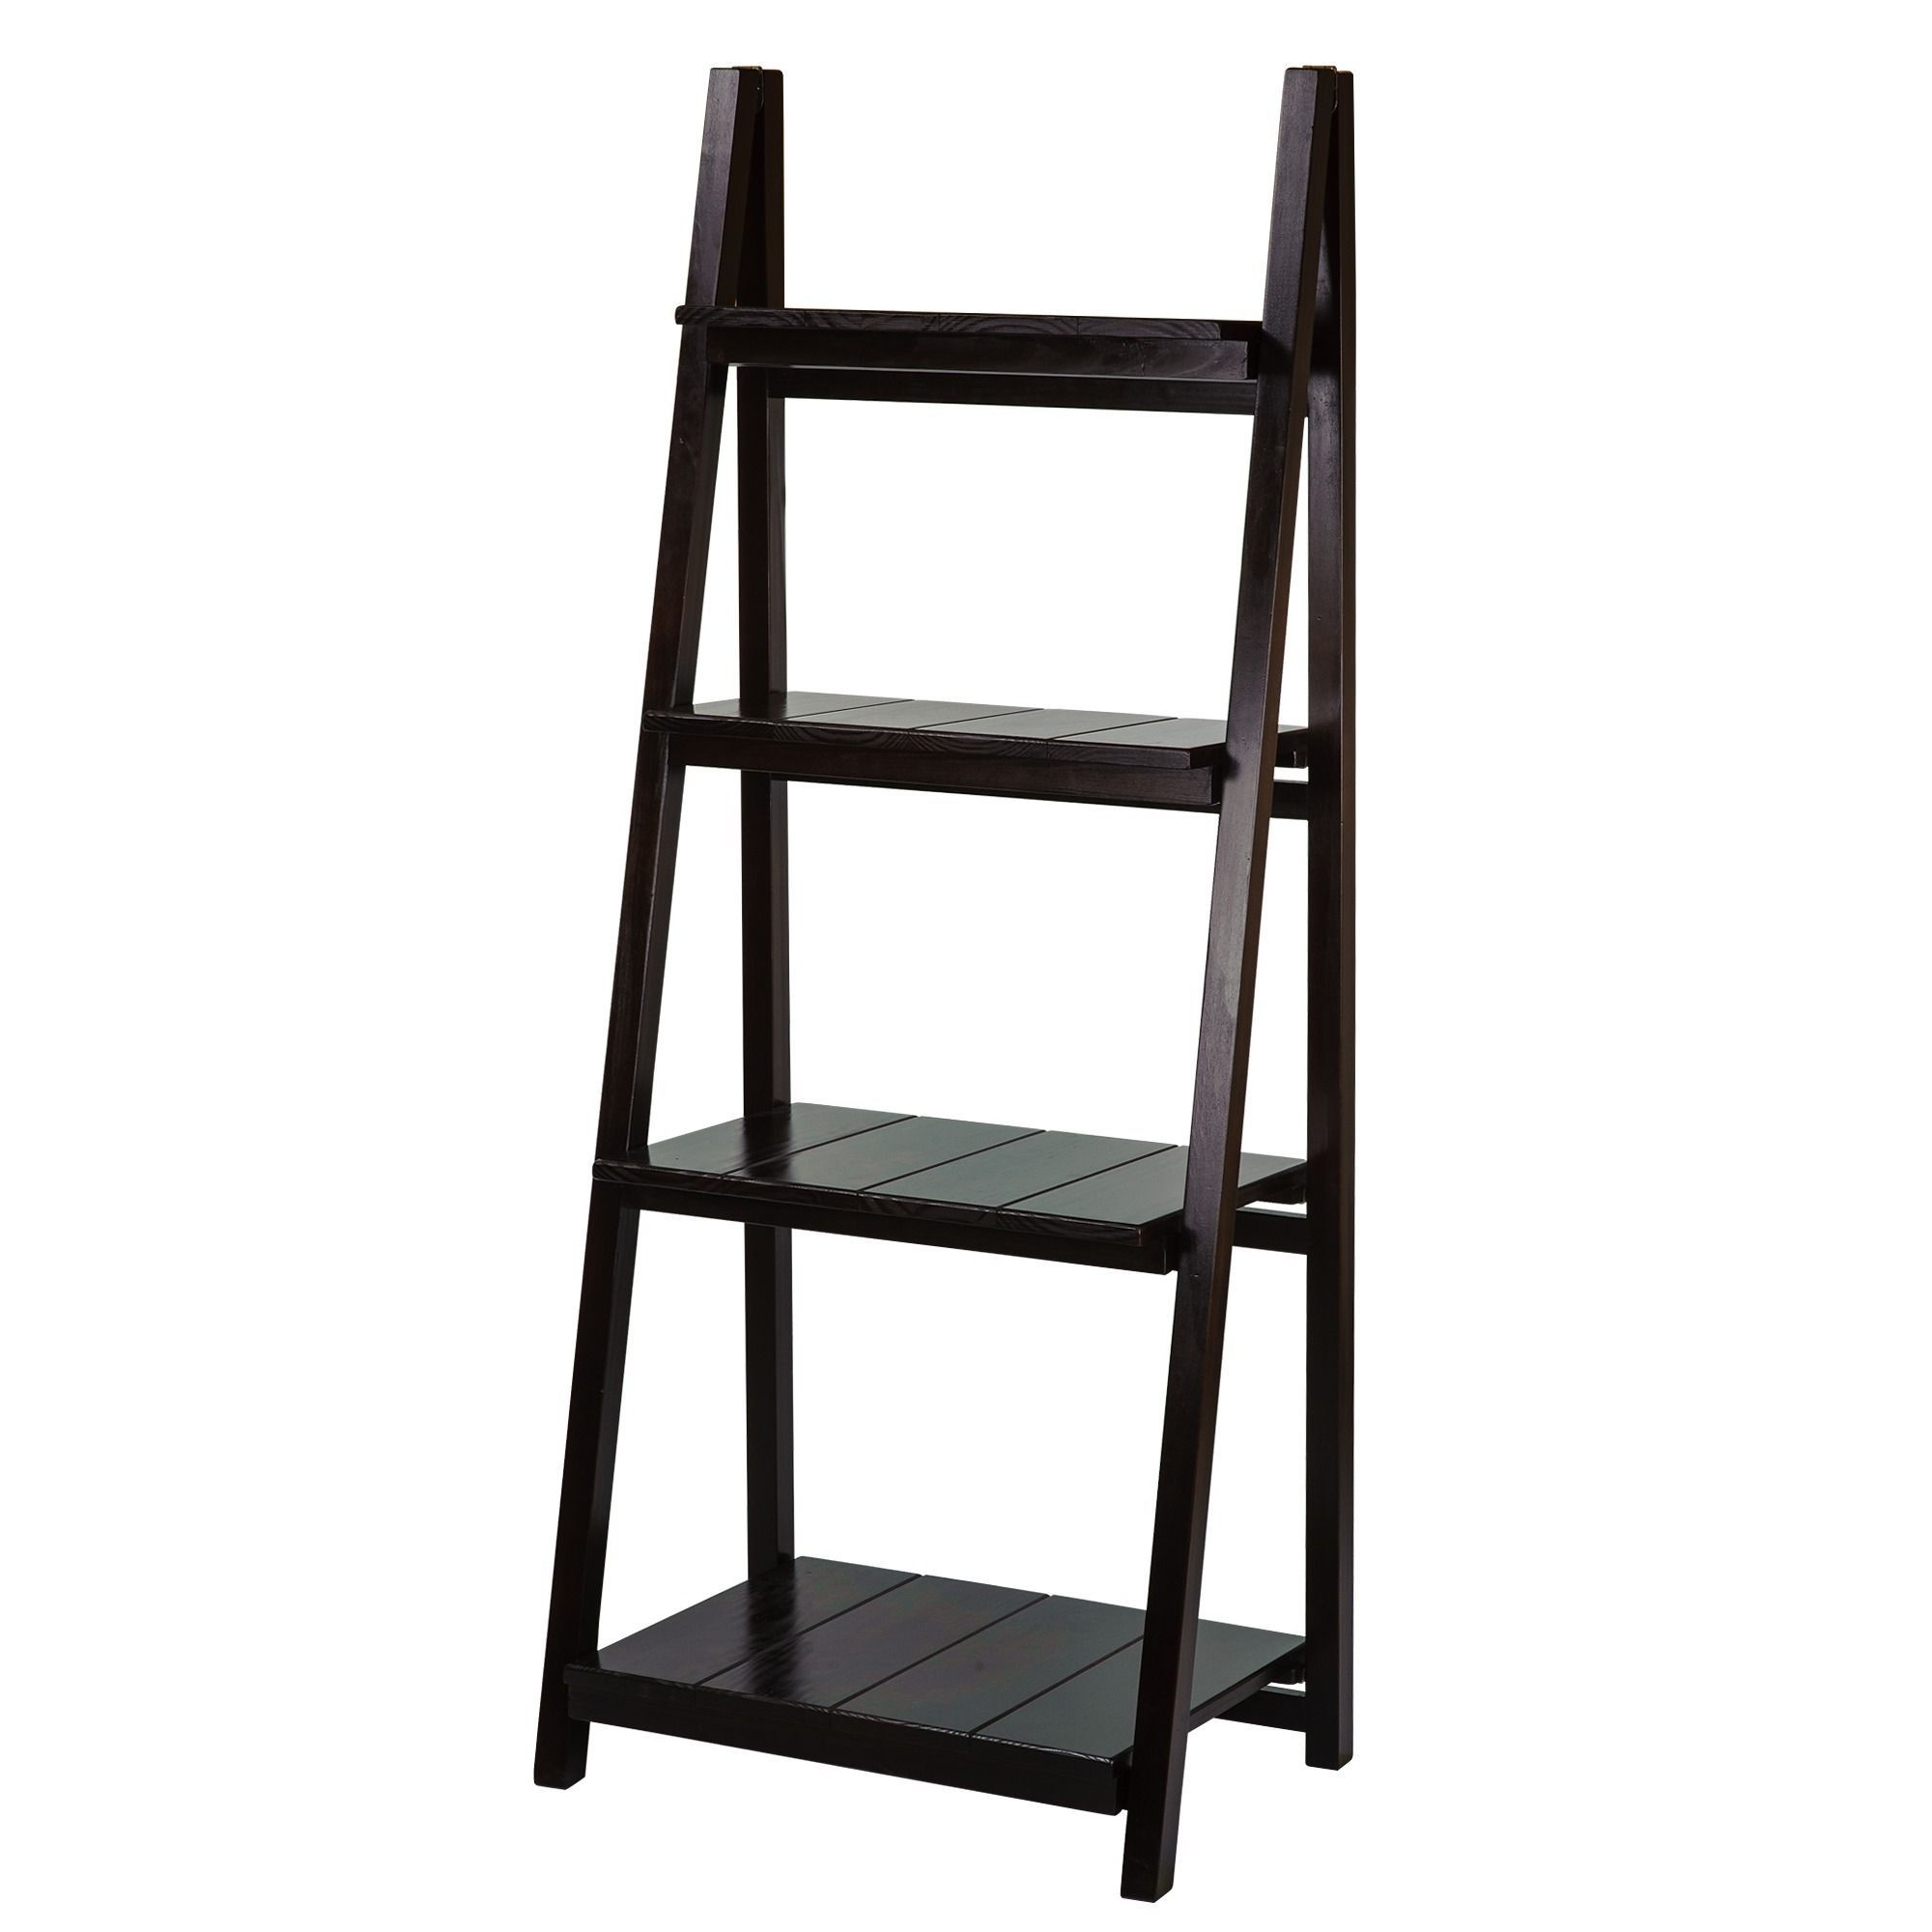 august teal bookshelf a folding shelves dark x w